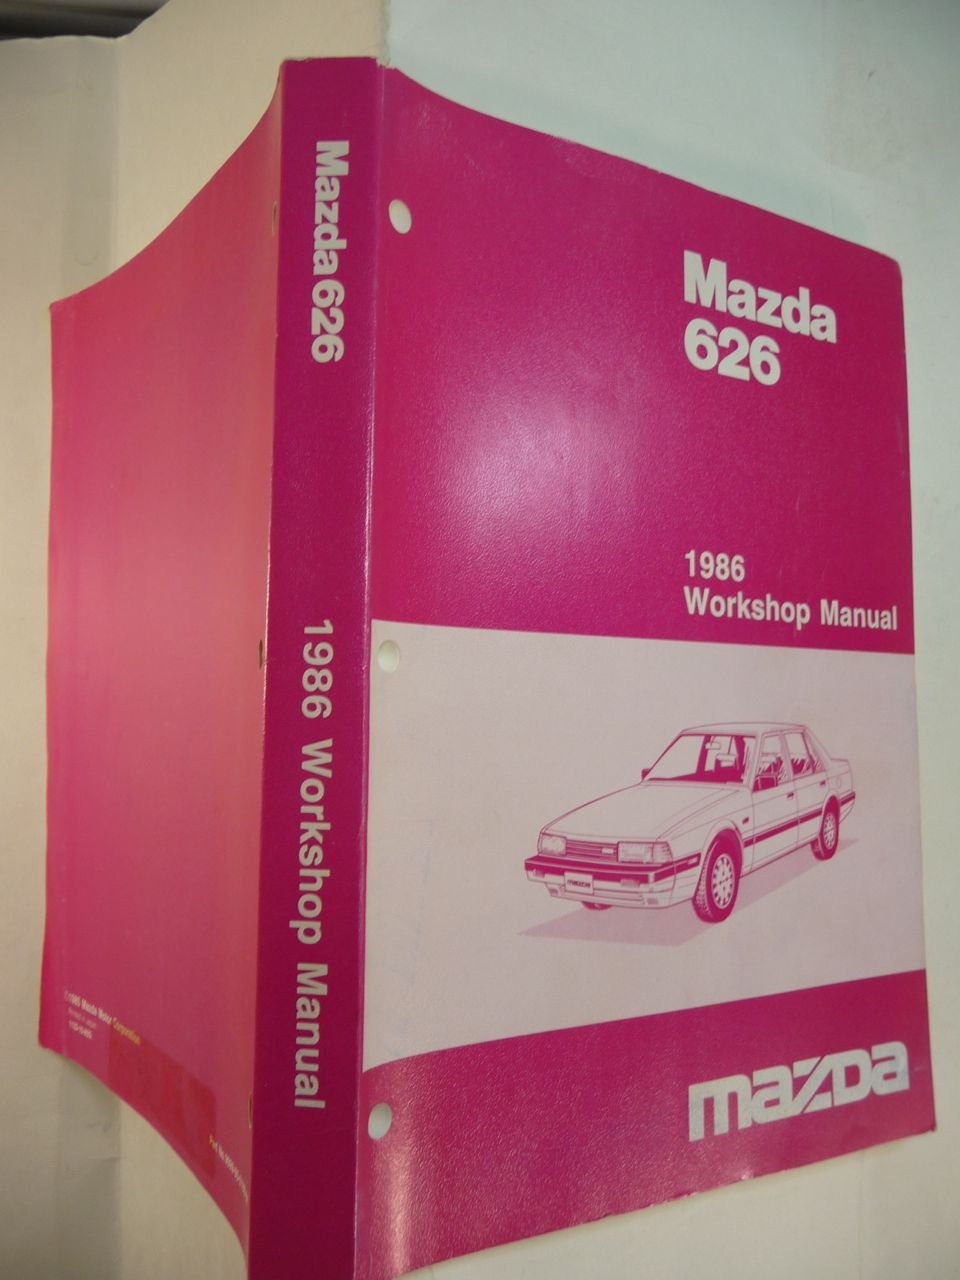 Mazda 626, 1986 Workshop Manual: Mazda Motor Corporation: Amazon.com: Books